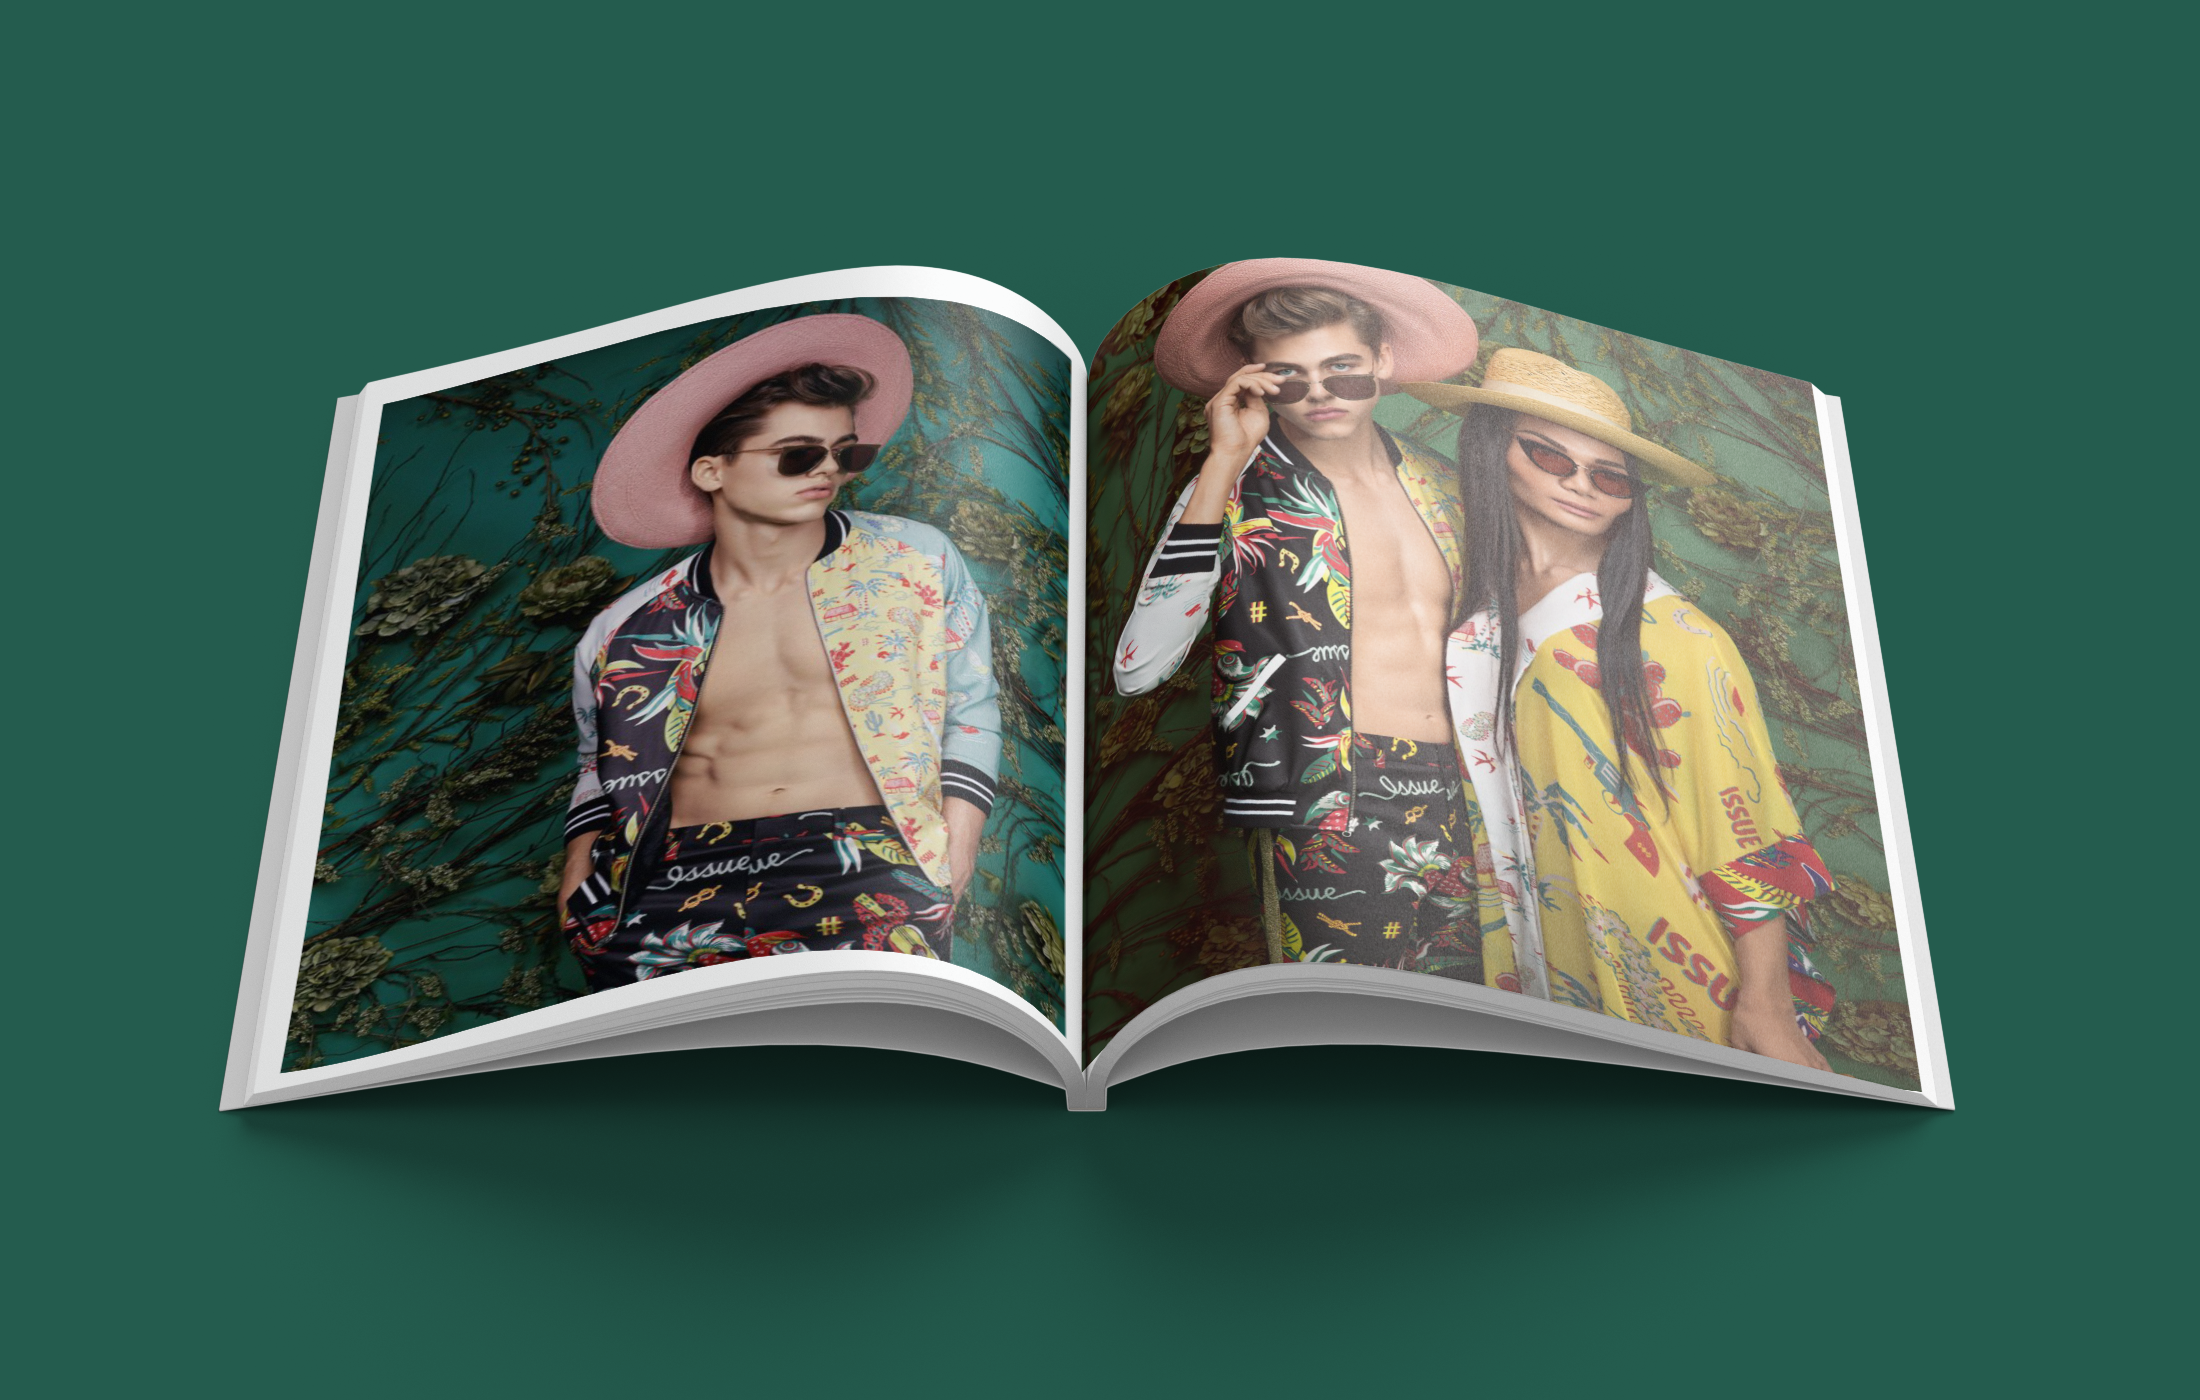 the-best-of-model-citizen-magazine-by-macky-suson-the-most-inclusive-fashion-magazine-68.png